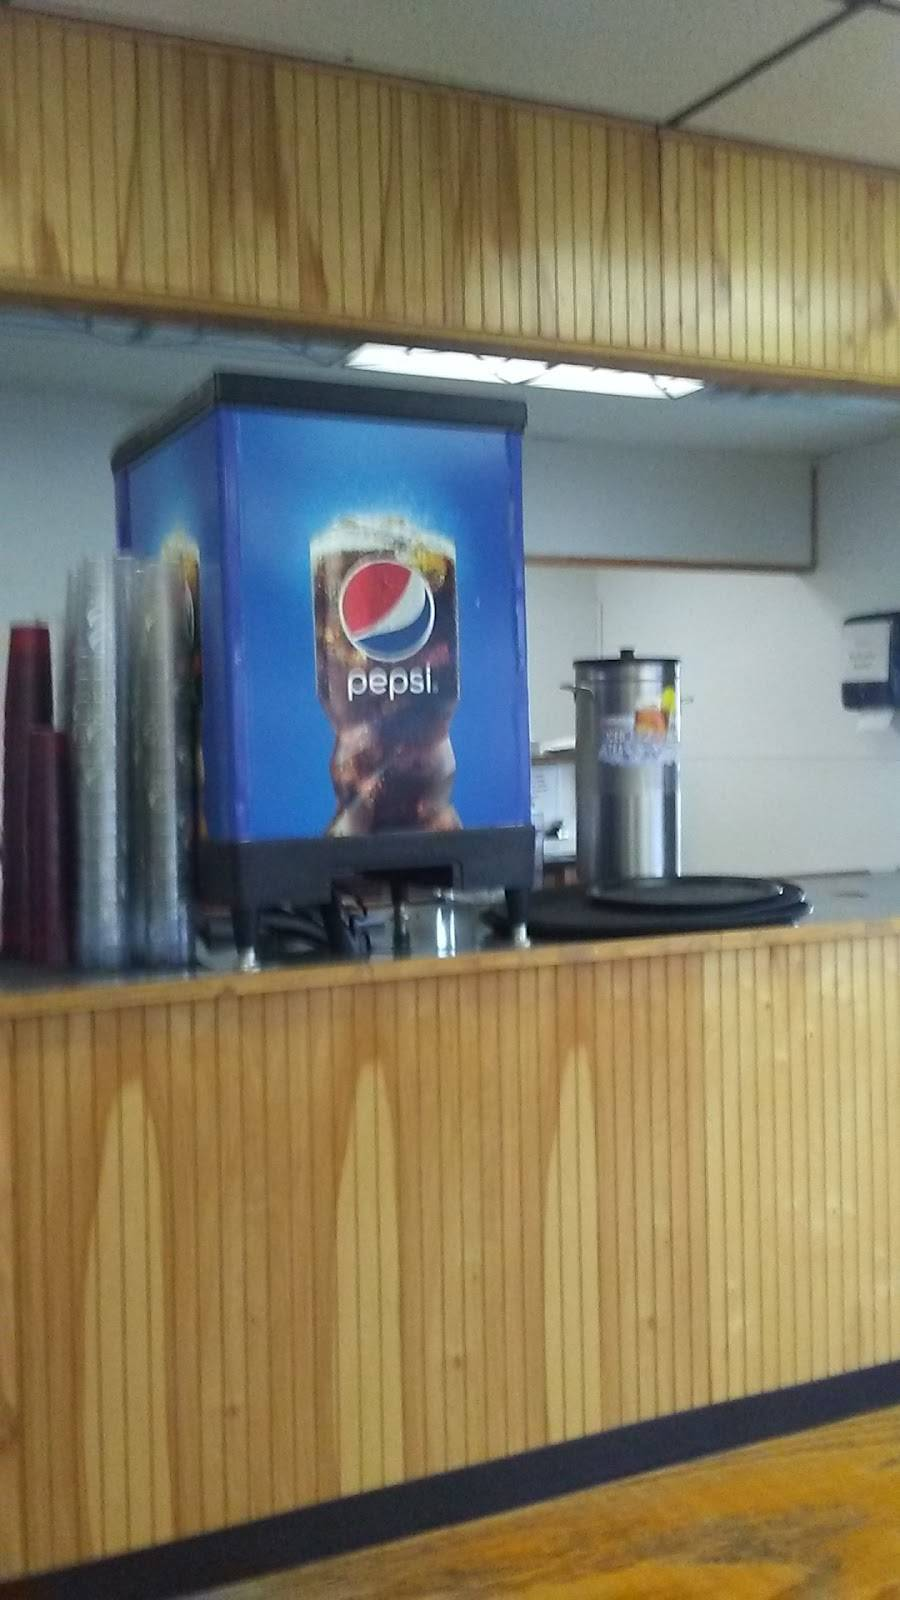 Cbs Hole in the Wall | restaurant | 1 Park Pl, Richwood, WV 26261, USA | 3048460141 OR +1 304-846-0141